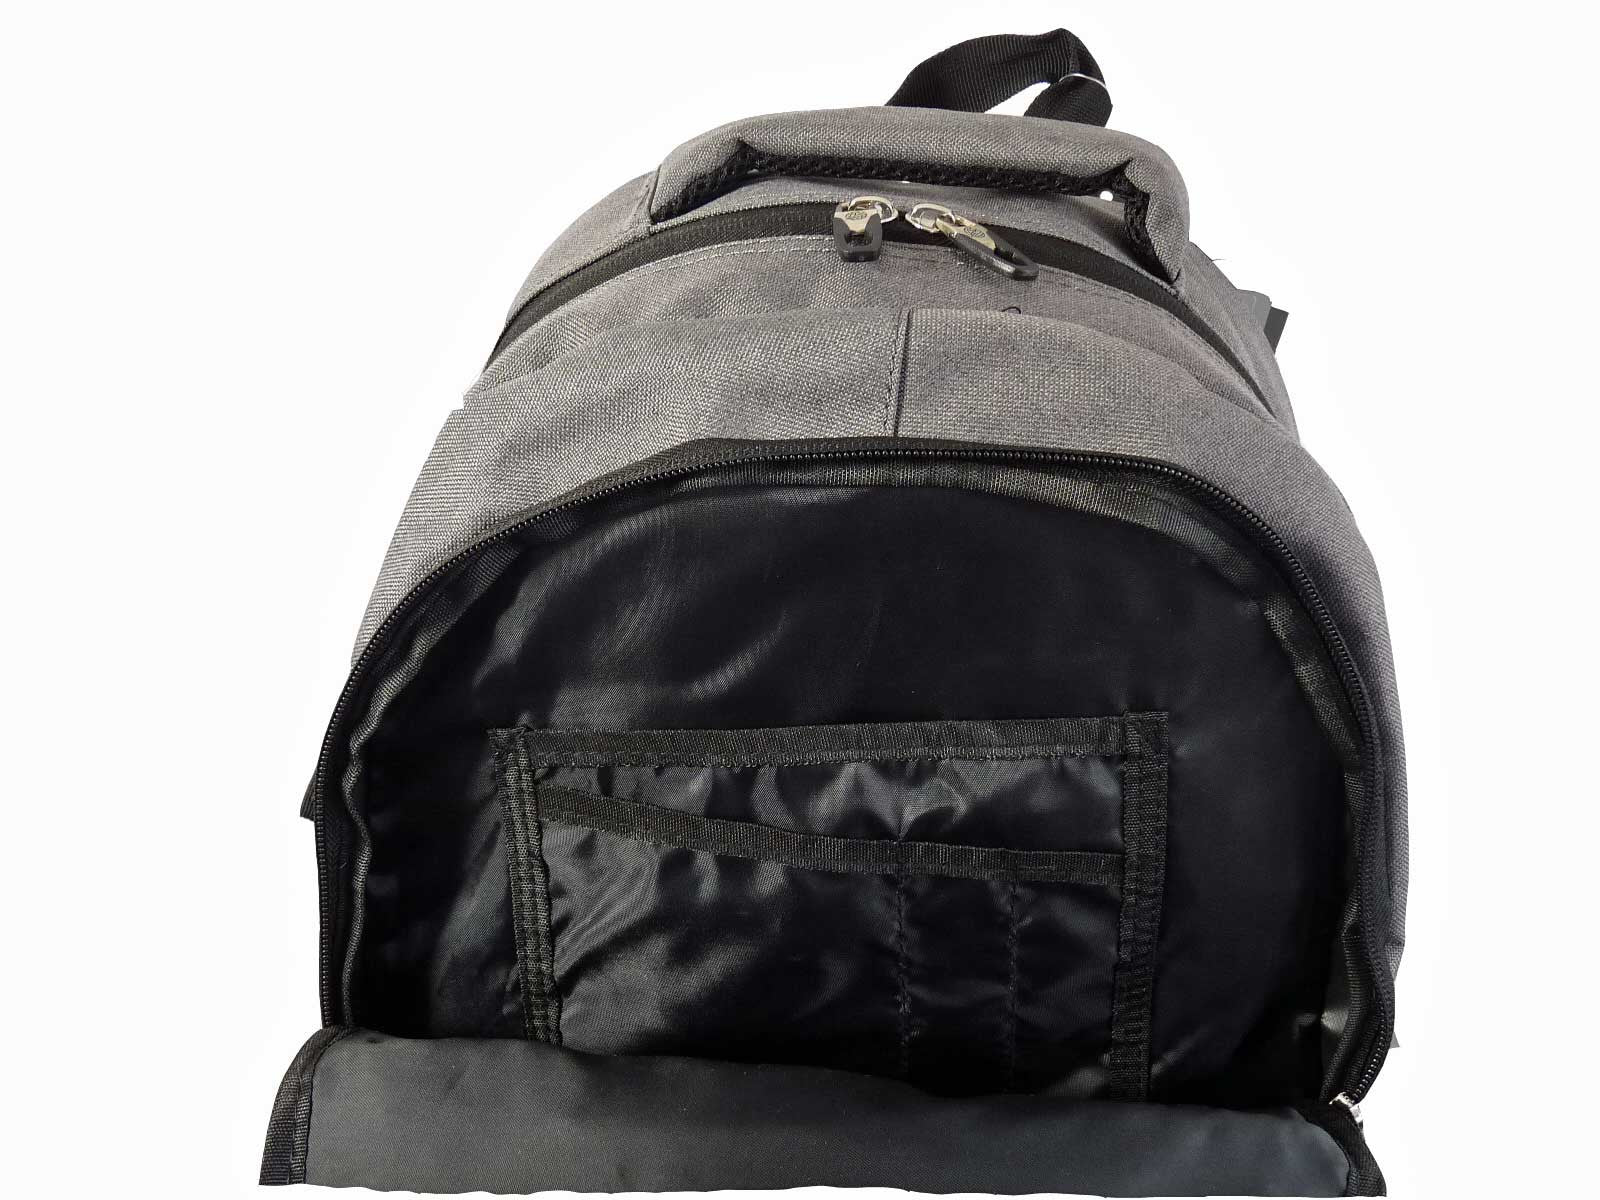 Laptop Macbook Backpack Rucksack Bag RL43GY Inside View